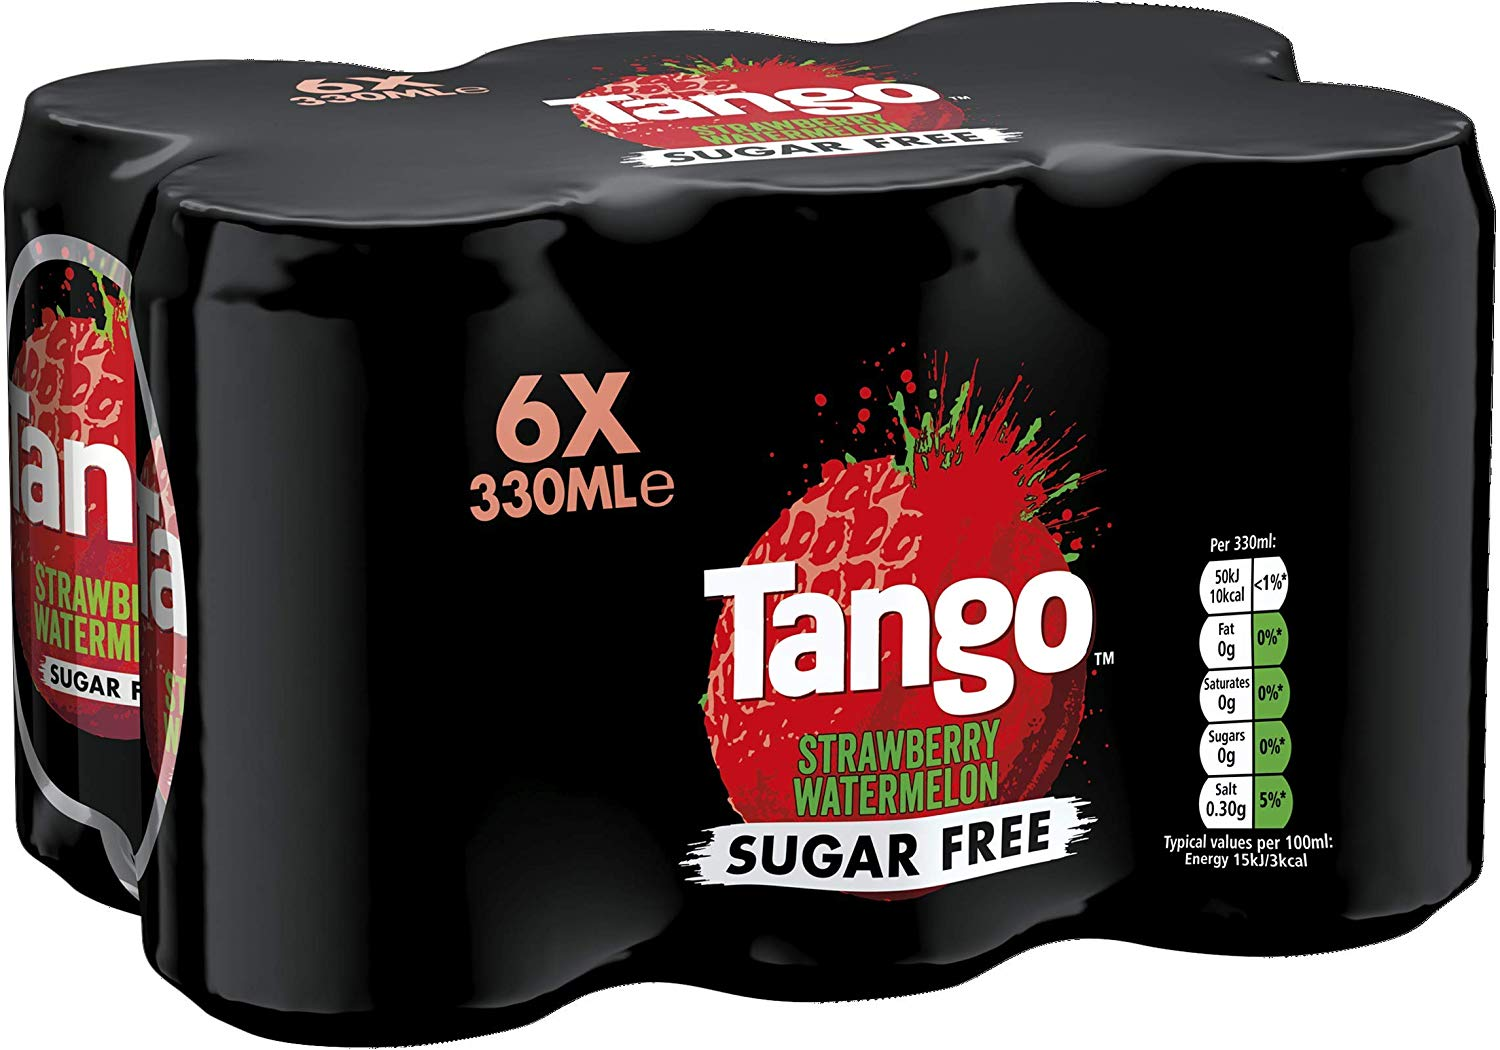 Tango Sugar Free Strawberry and Watermelon, 330 ml (Pack of 6) Prime Only